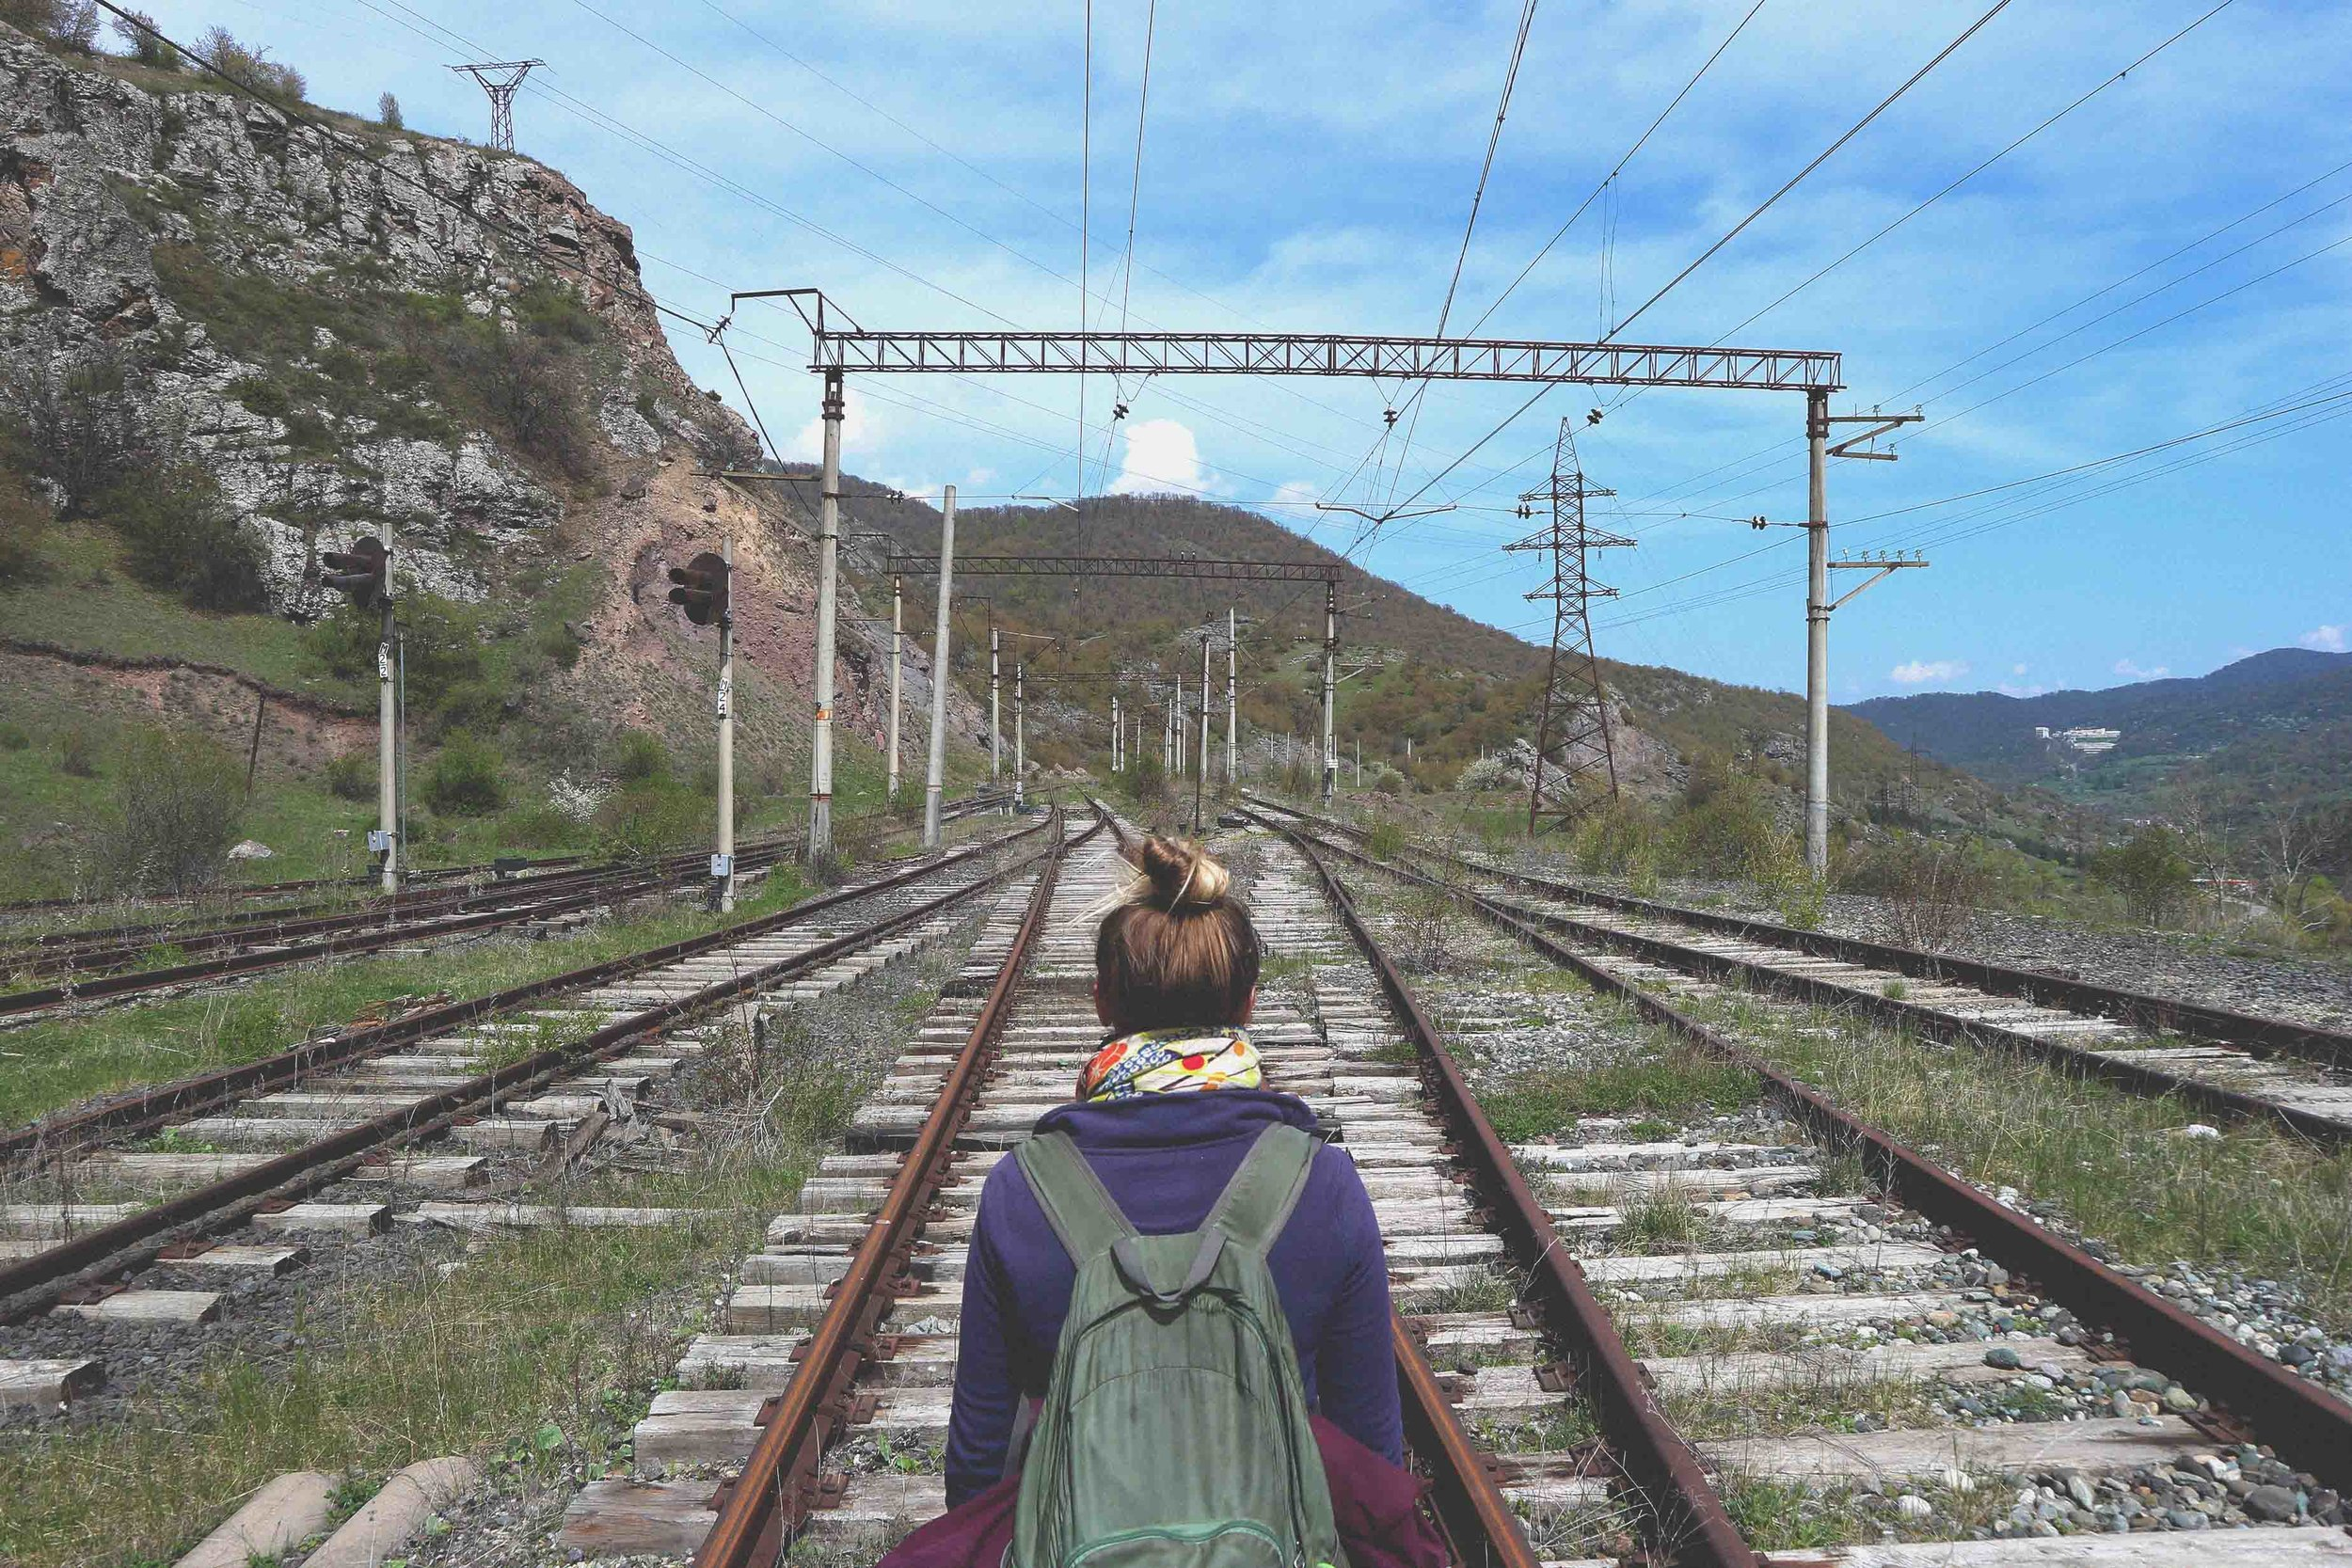 Here's Ali wondering down Dilijan's disused train line